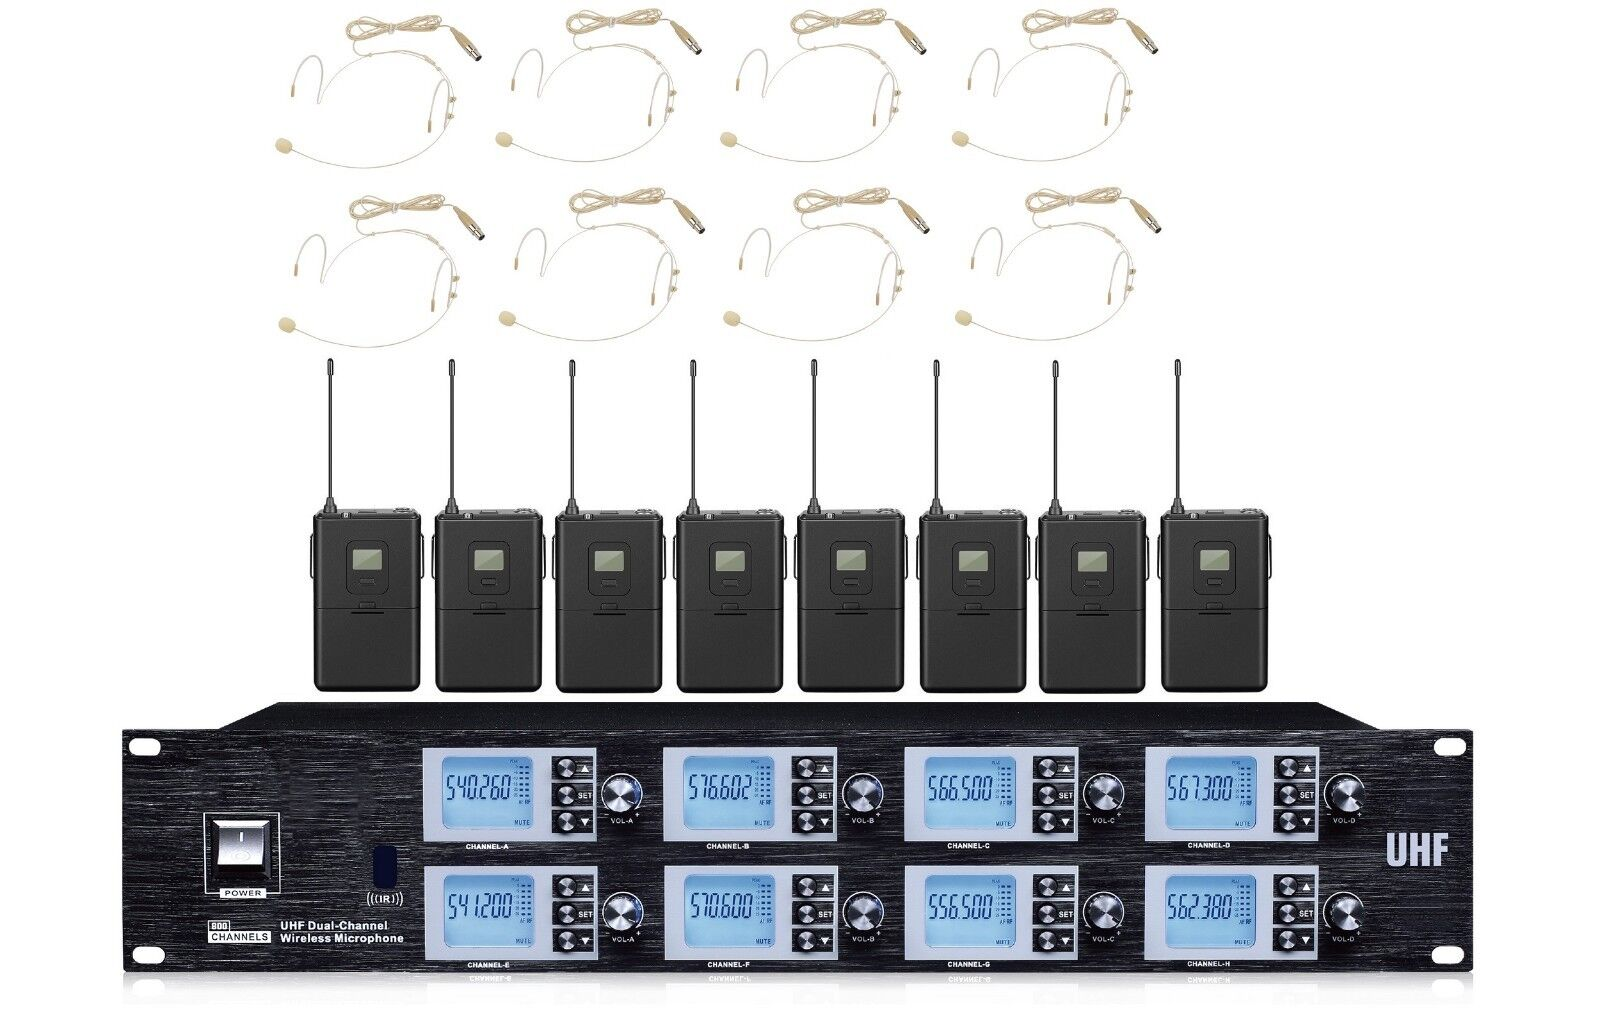 8 Channels Headset Microphone System Professional Stage Microphone For AKG Mics